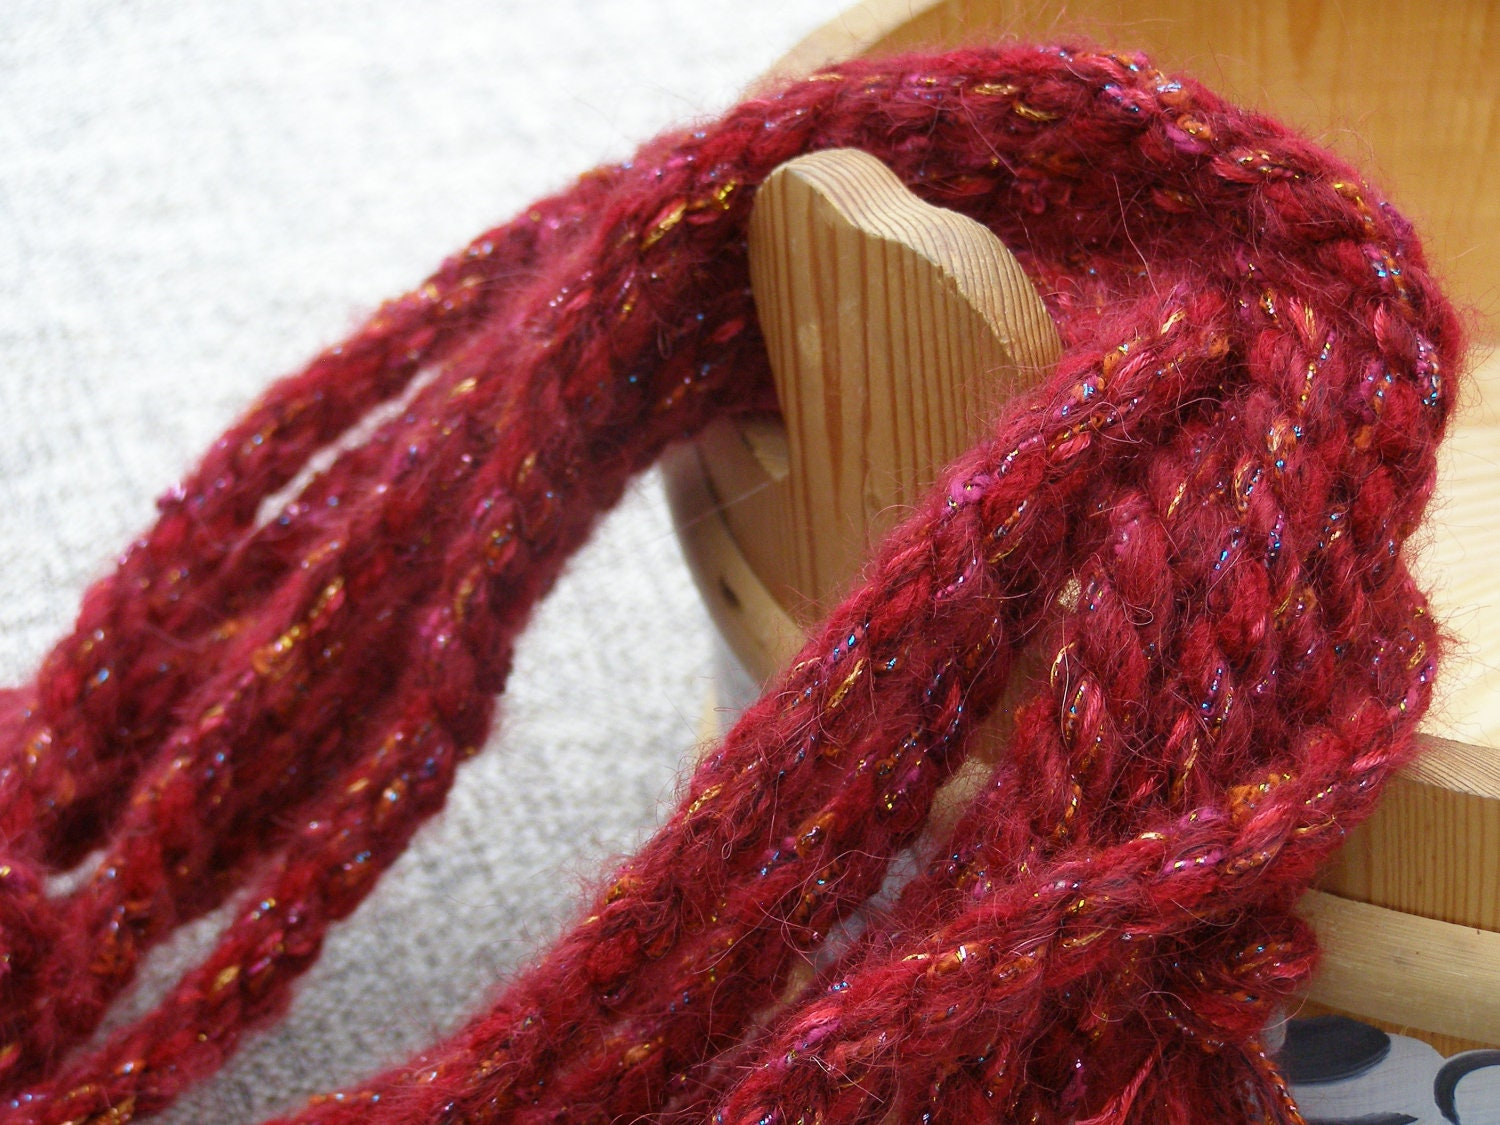 A thick cherry red rope for a Christmas tree garland, animal tails, purse handles, tying floral arrangements, bracelets and more  ABL-277 - gothenburgcollection